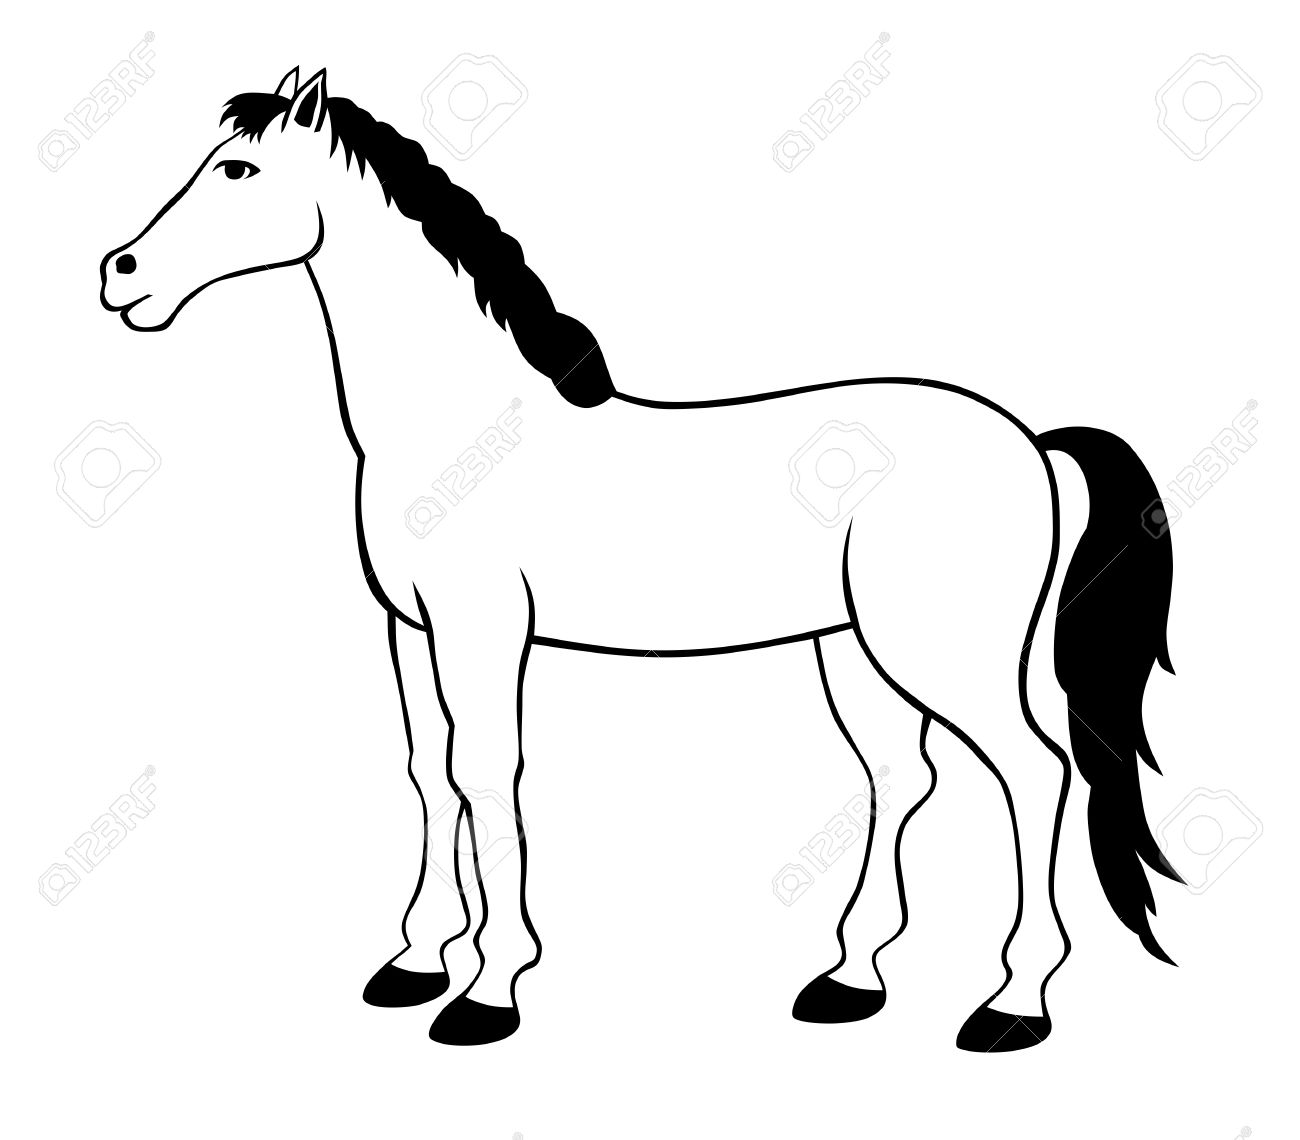 1300x1140 Vector Illustration Of Standing Horse Silhouette Royalty Free